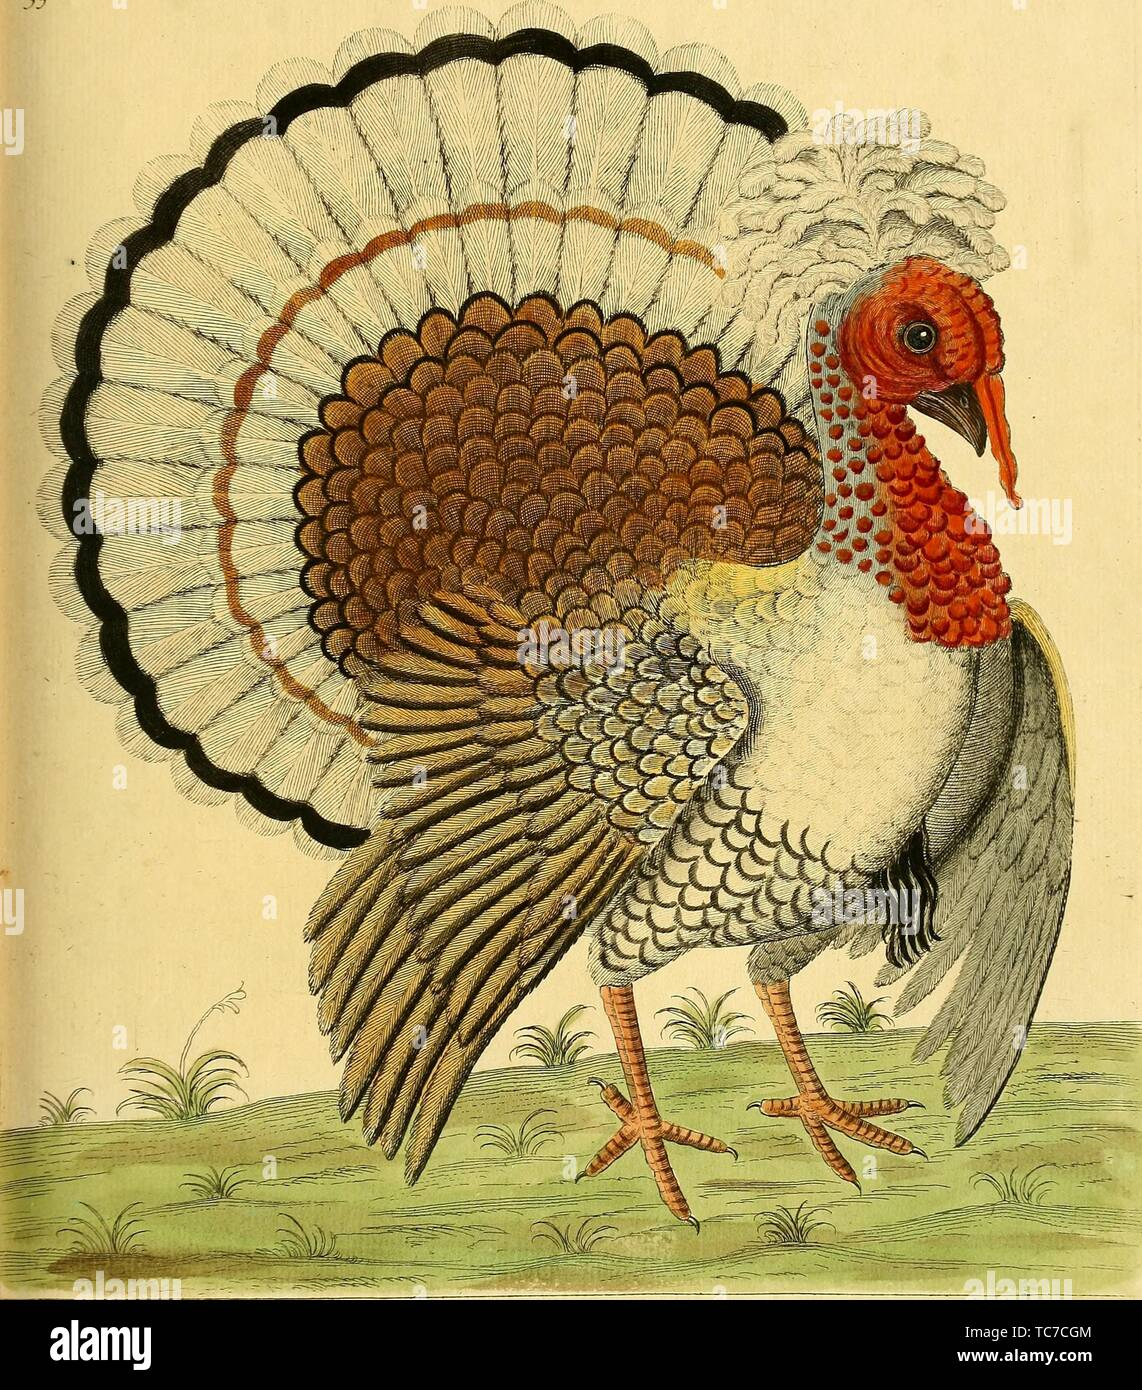 Engraved drawing of Crested Turkey, from the book 'A natural history of birds' by Eleazar Albin, 1731. Courtesy Internet Archive. () - Stock Image